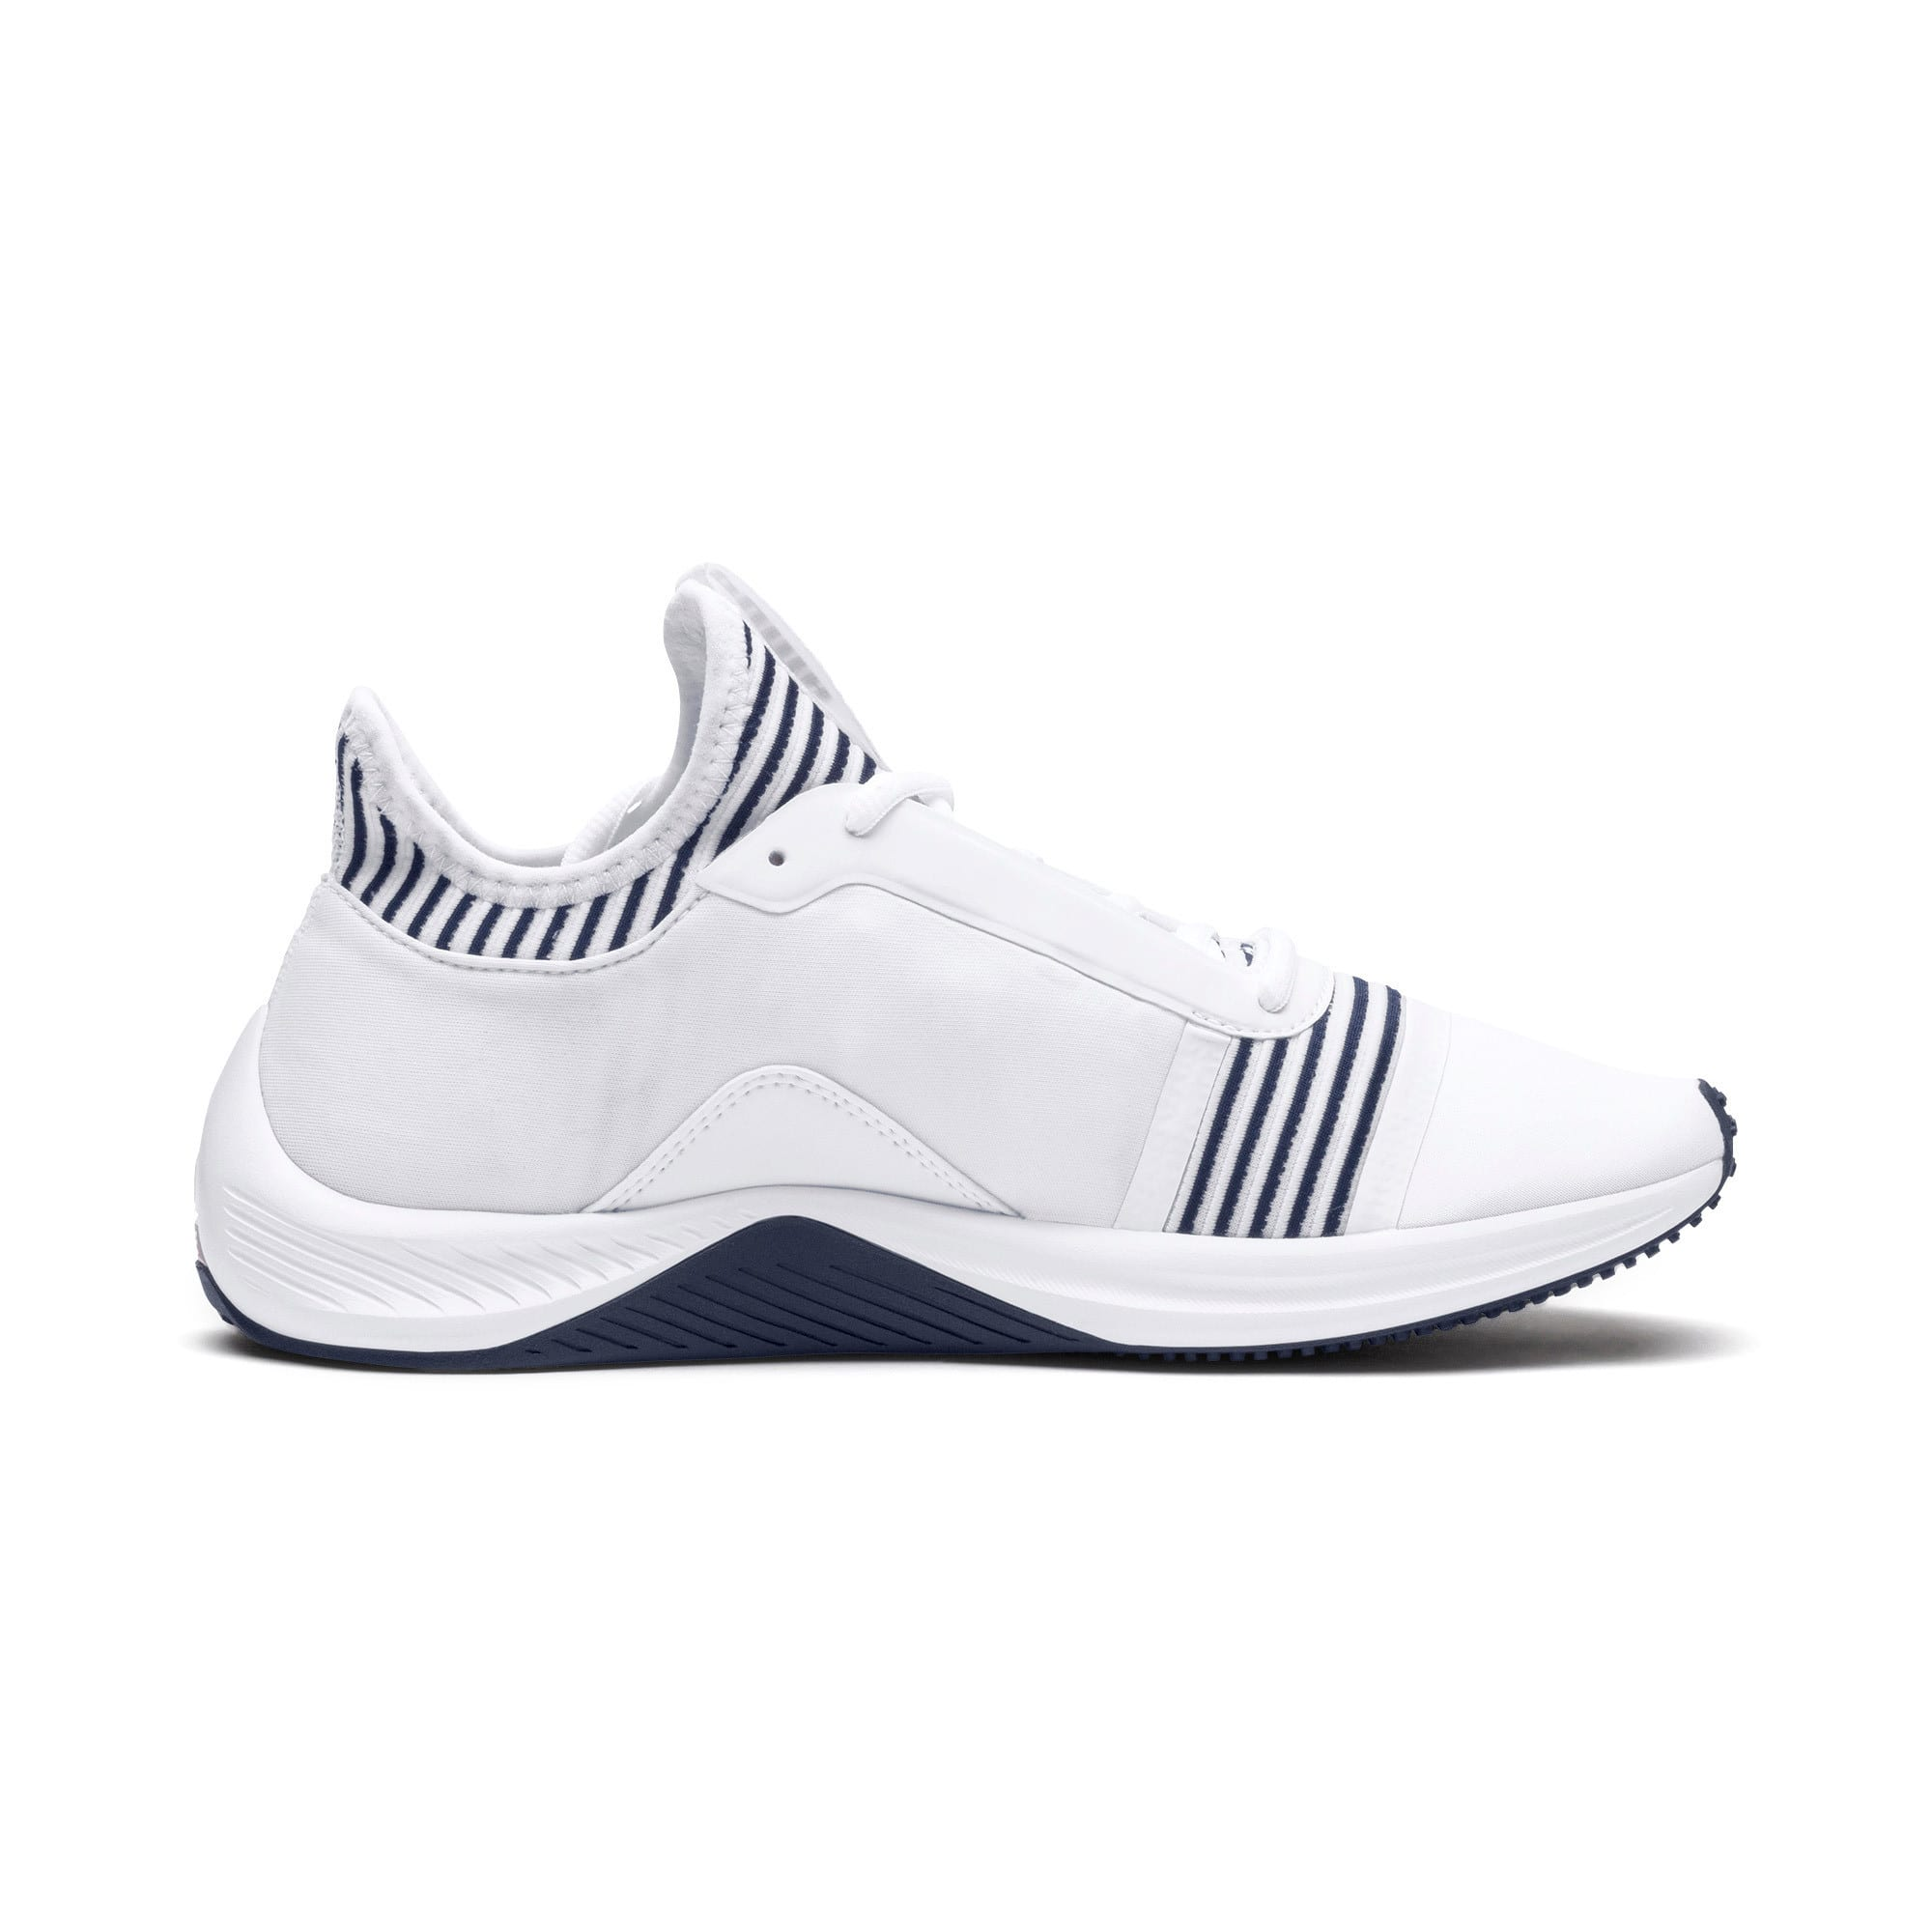 Thumbnail 6 of Amp XT Women's Trainers, Puma White-Peacoat, medium-IND